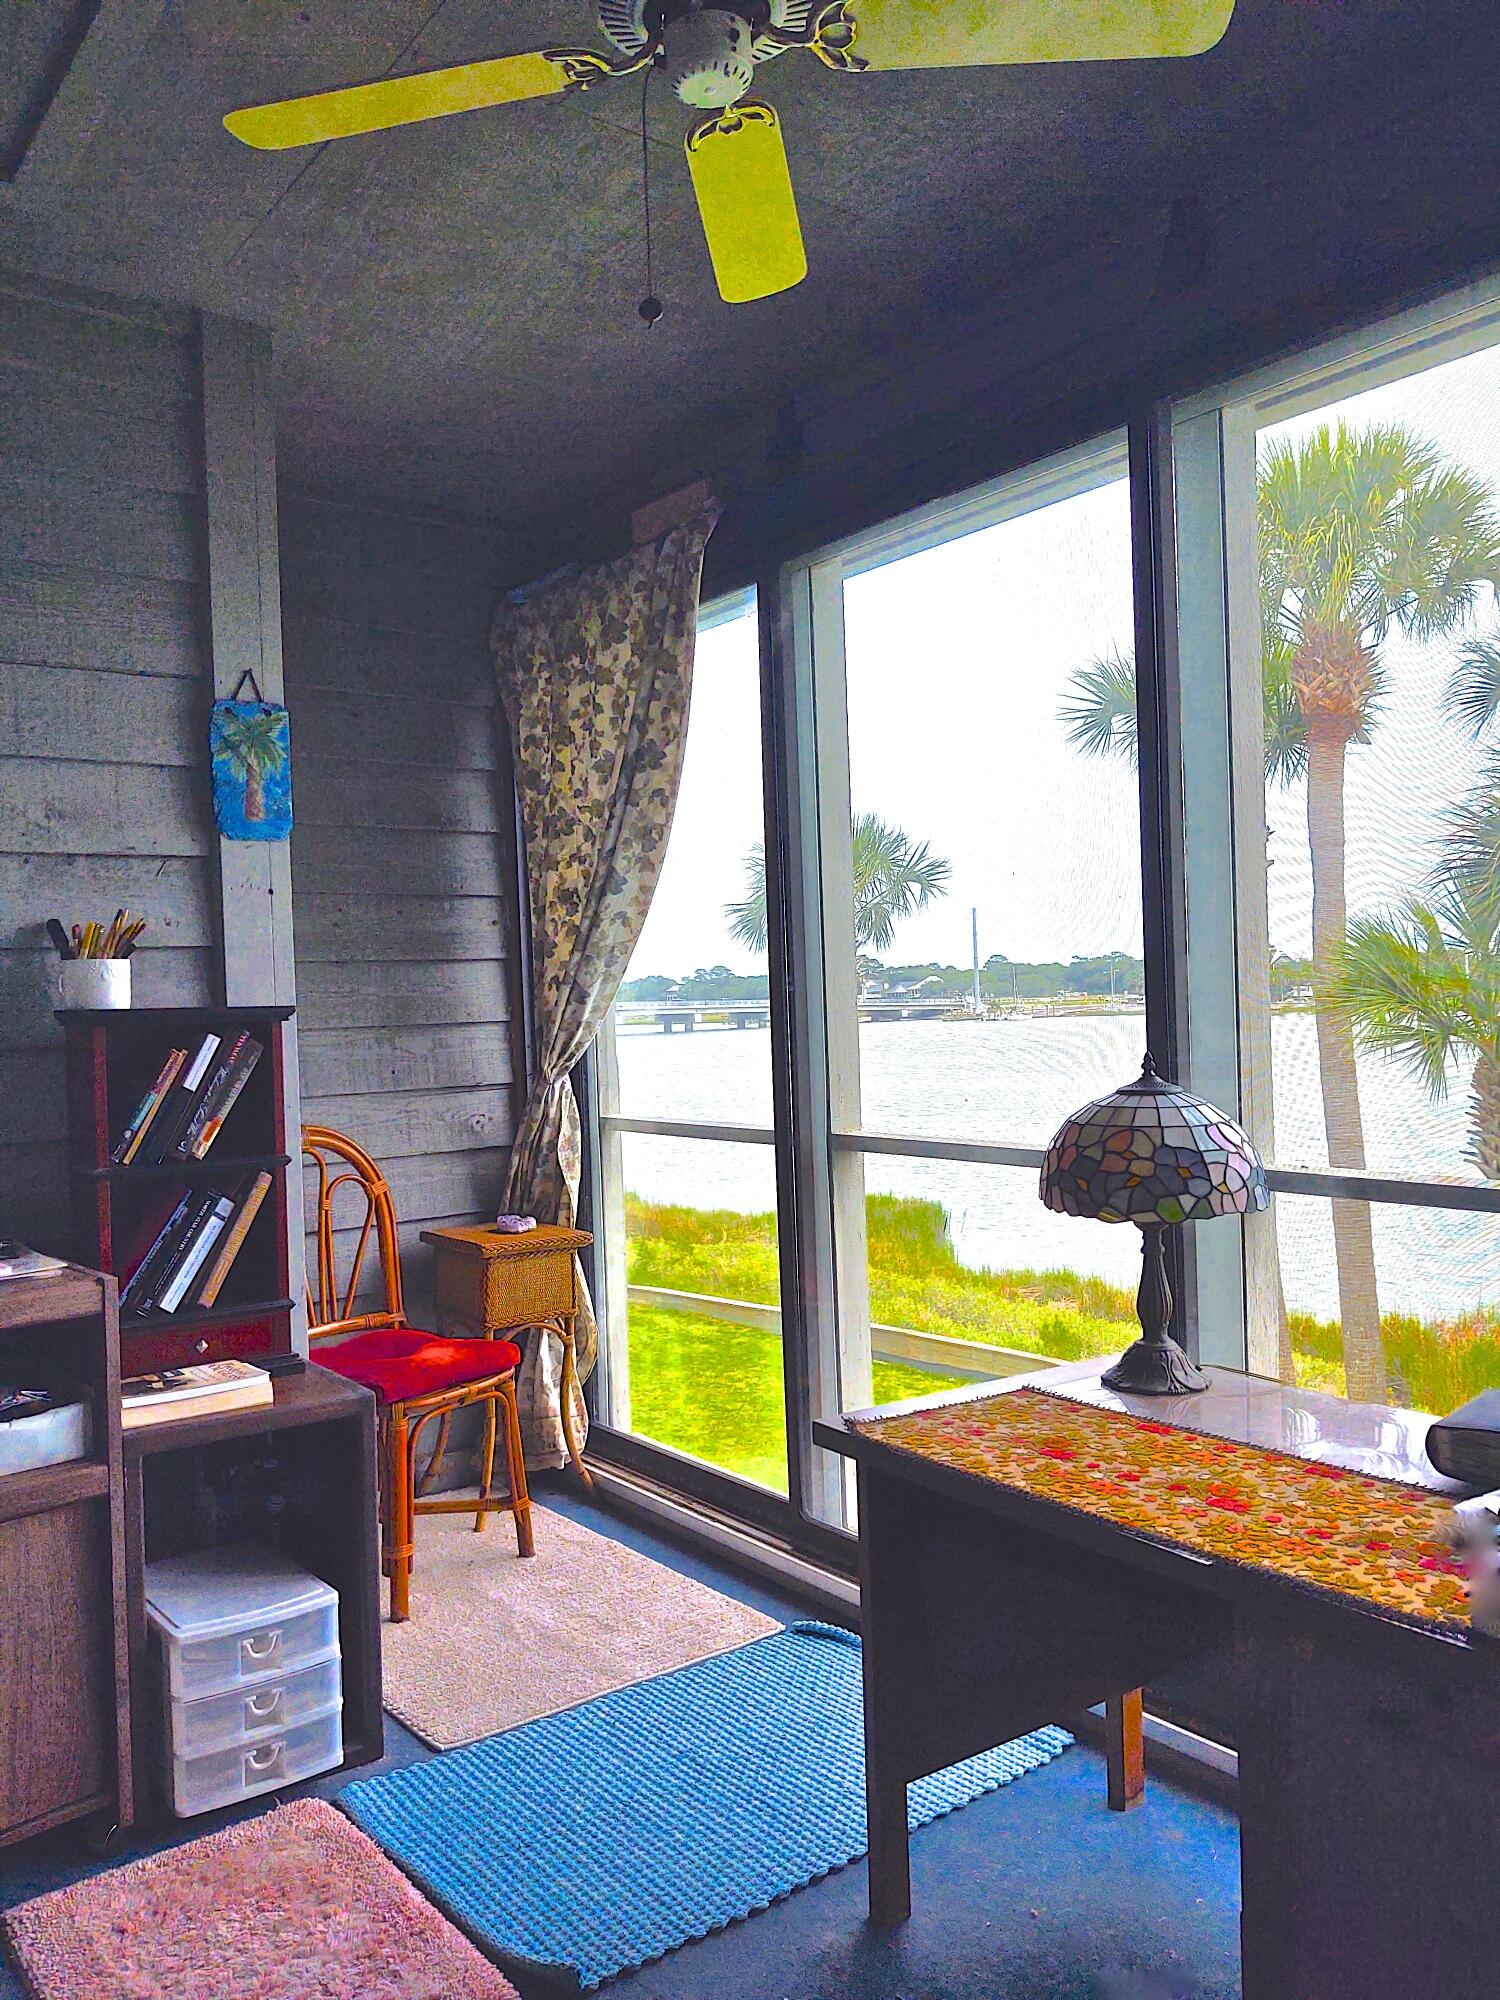 Mariners Cay Homes For Sale - 22 Mariners Cay, Folly Beach, SC - 1